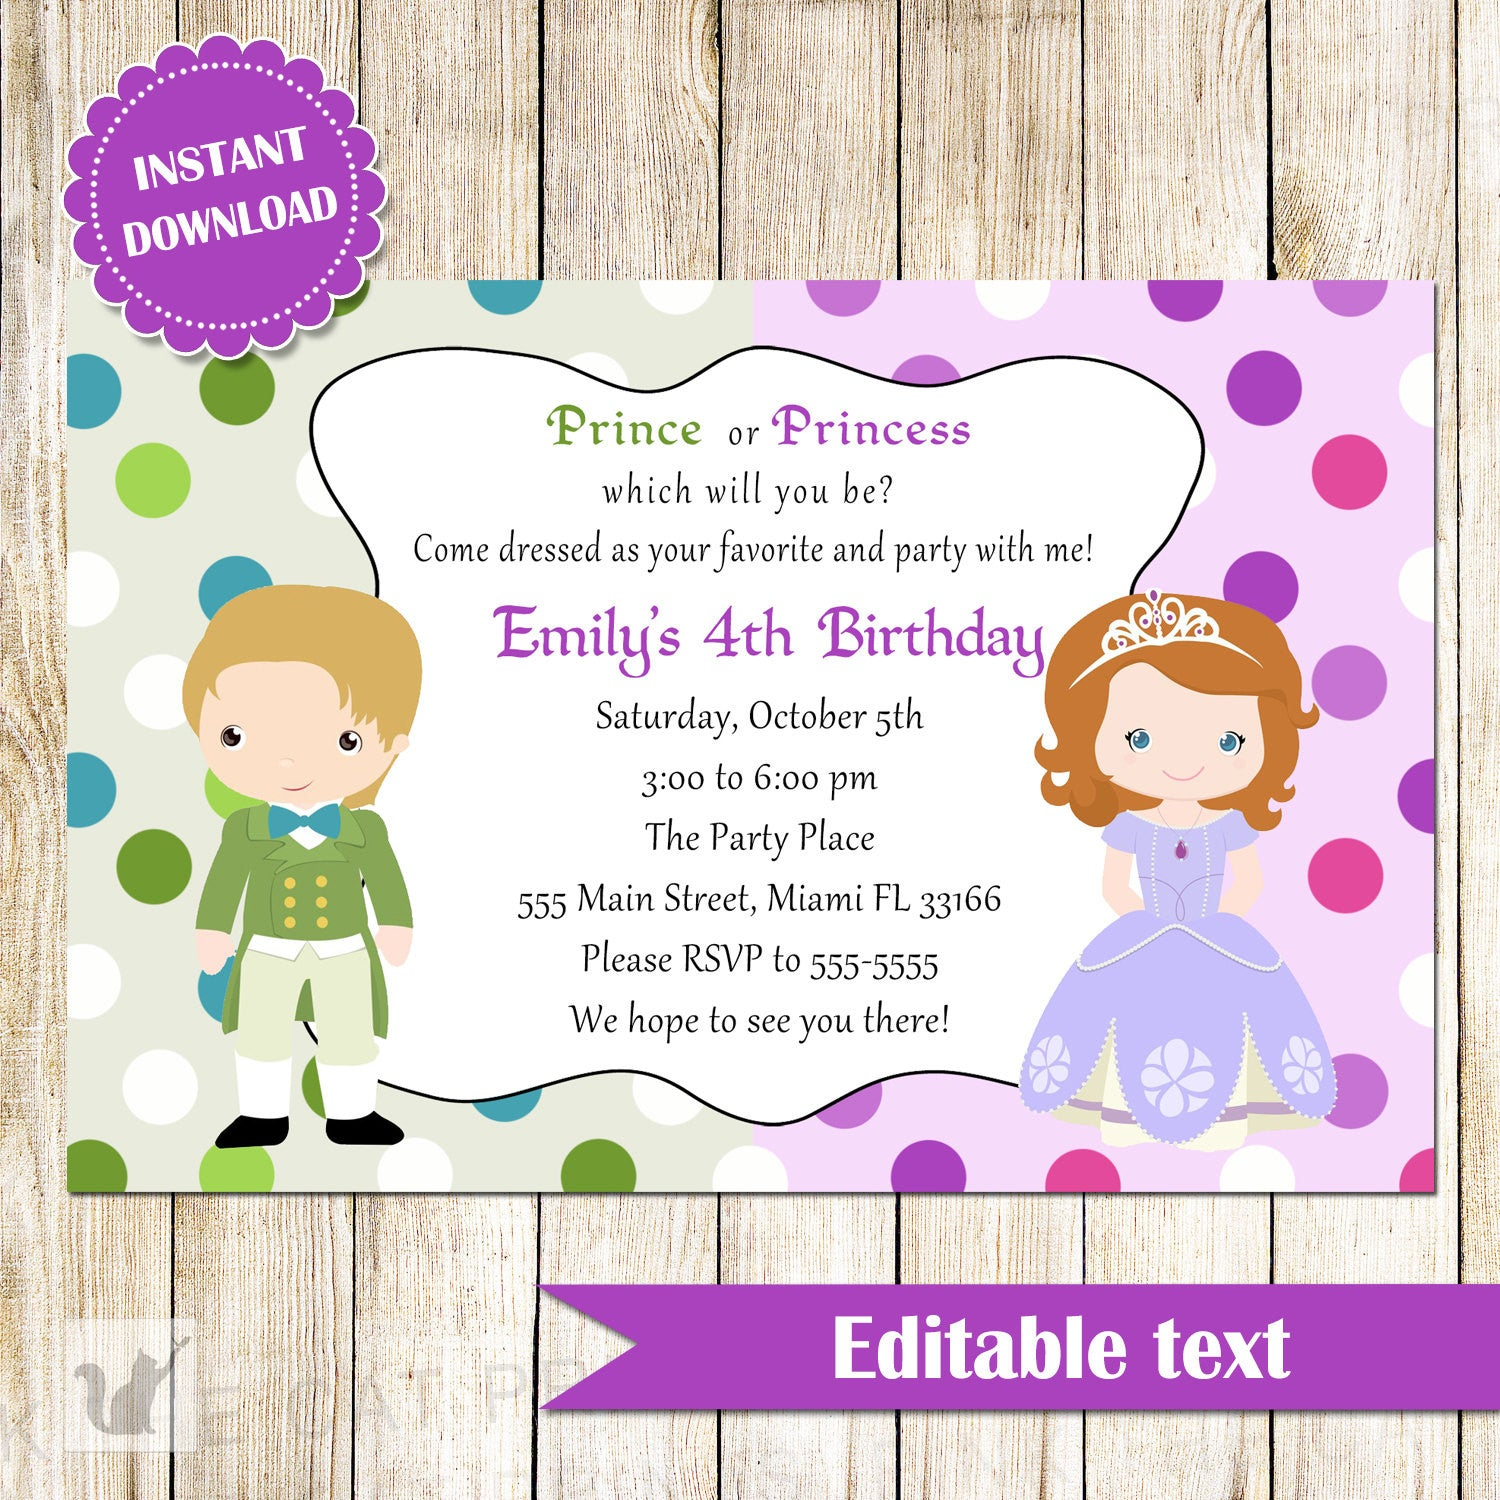 Prince princess invitation kids birthday instant download pink the cat birthday invitation prince princess filmwisefo